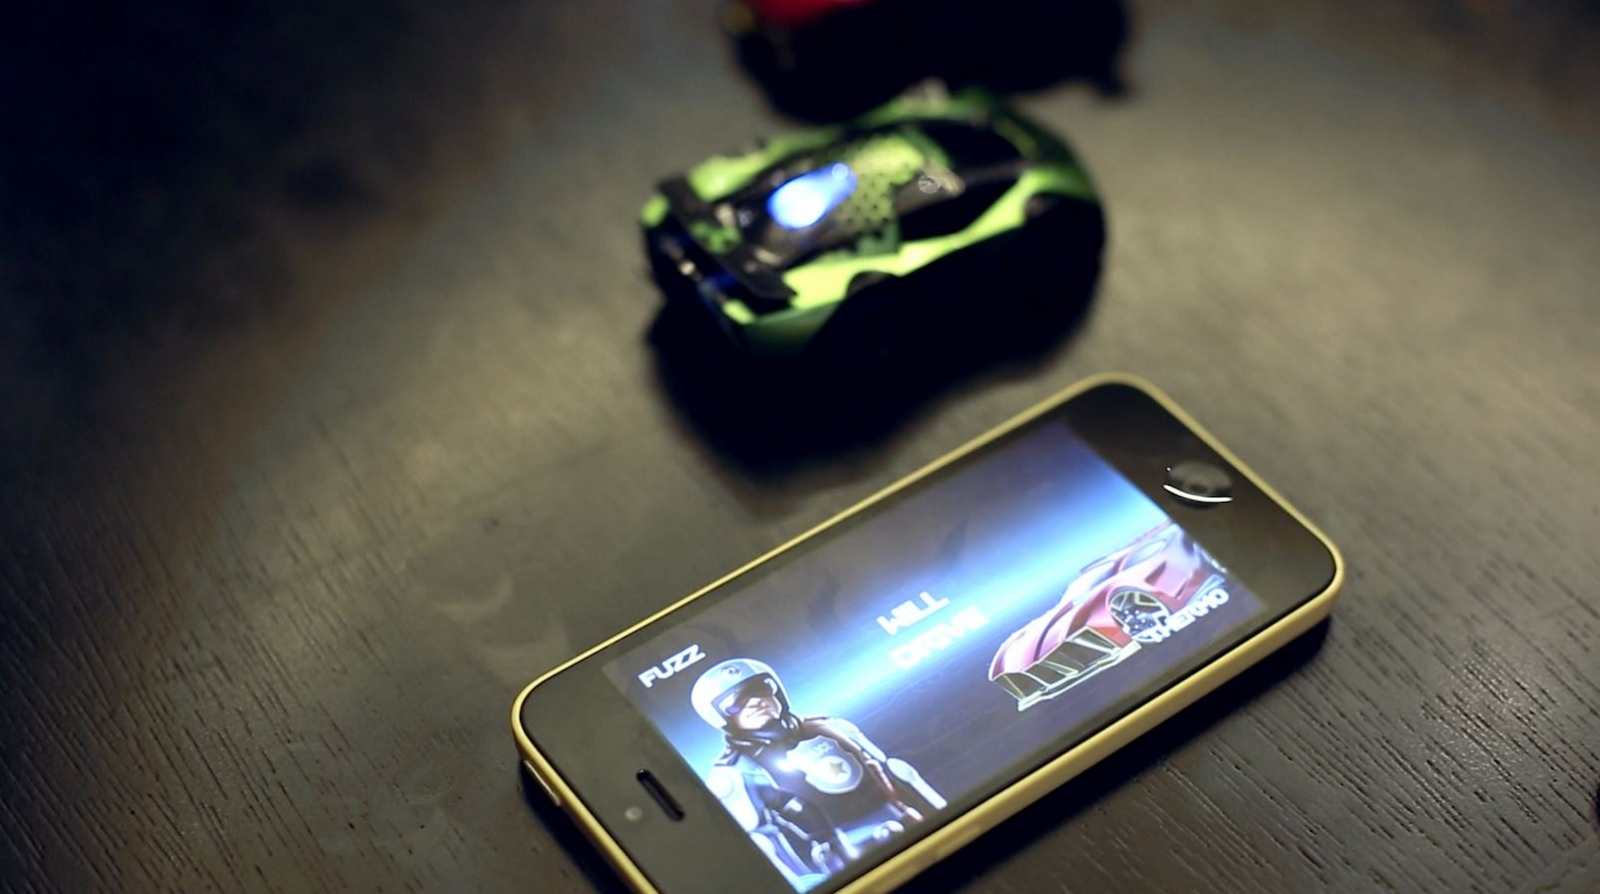 Anki Overdrive, toys of the future and build a real world version of the Toy Story toy box